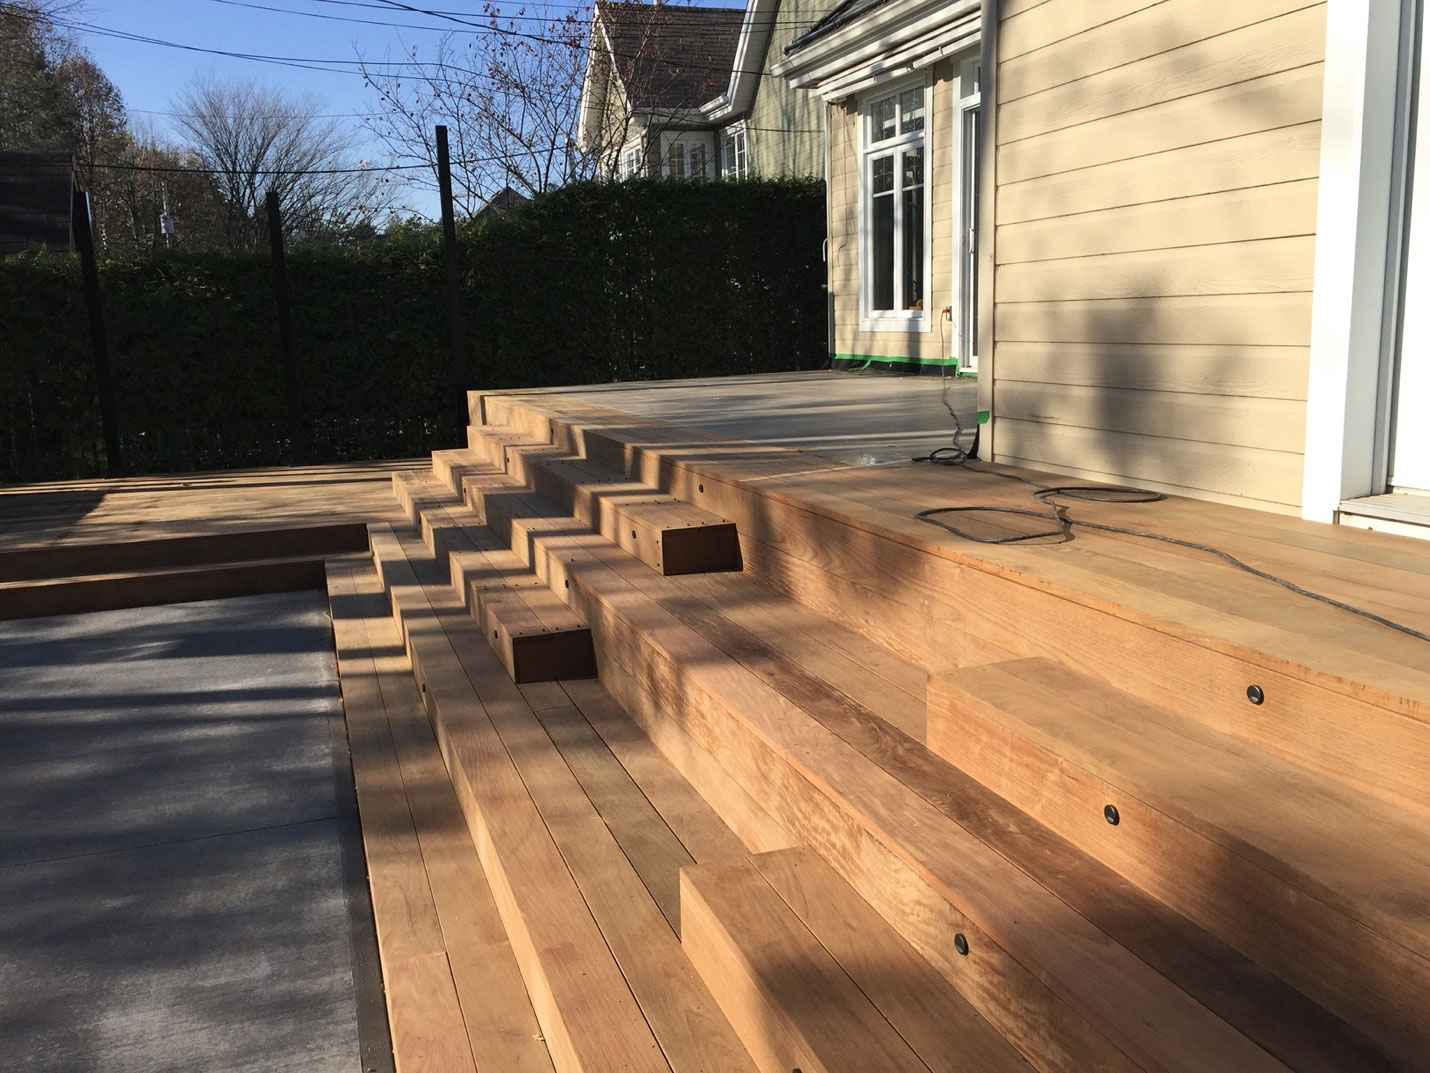 Step 4 for the spa deck: building the new deck with Brazilian walnut